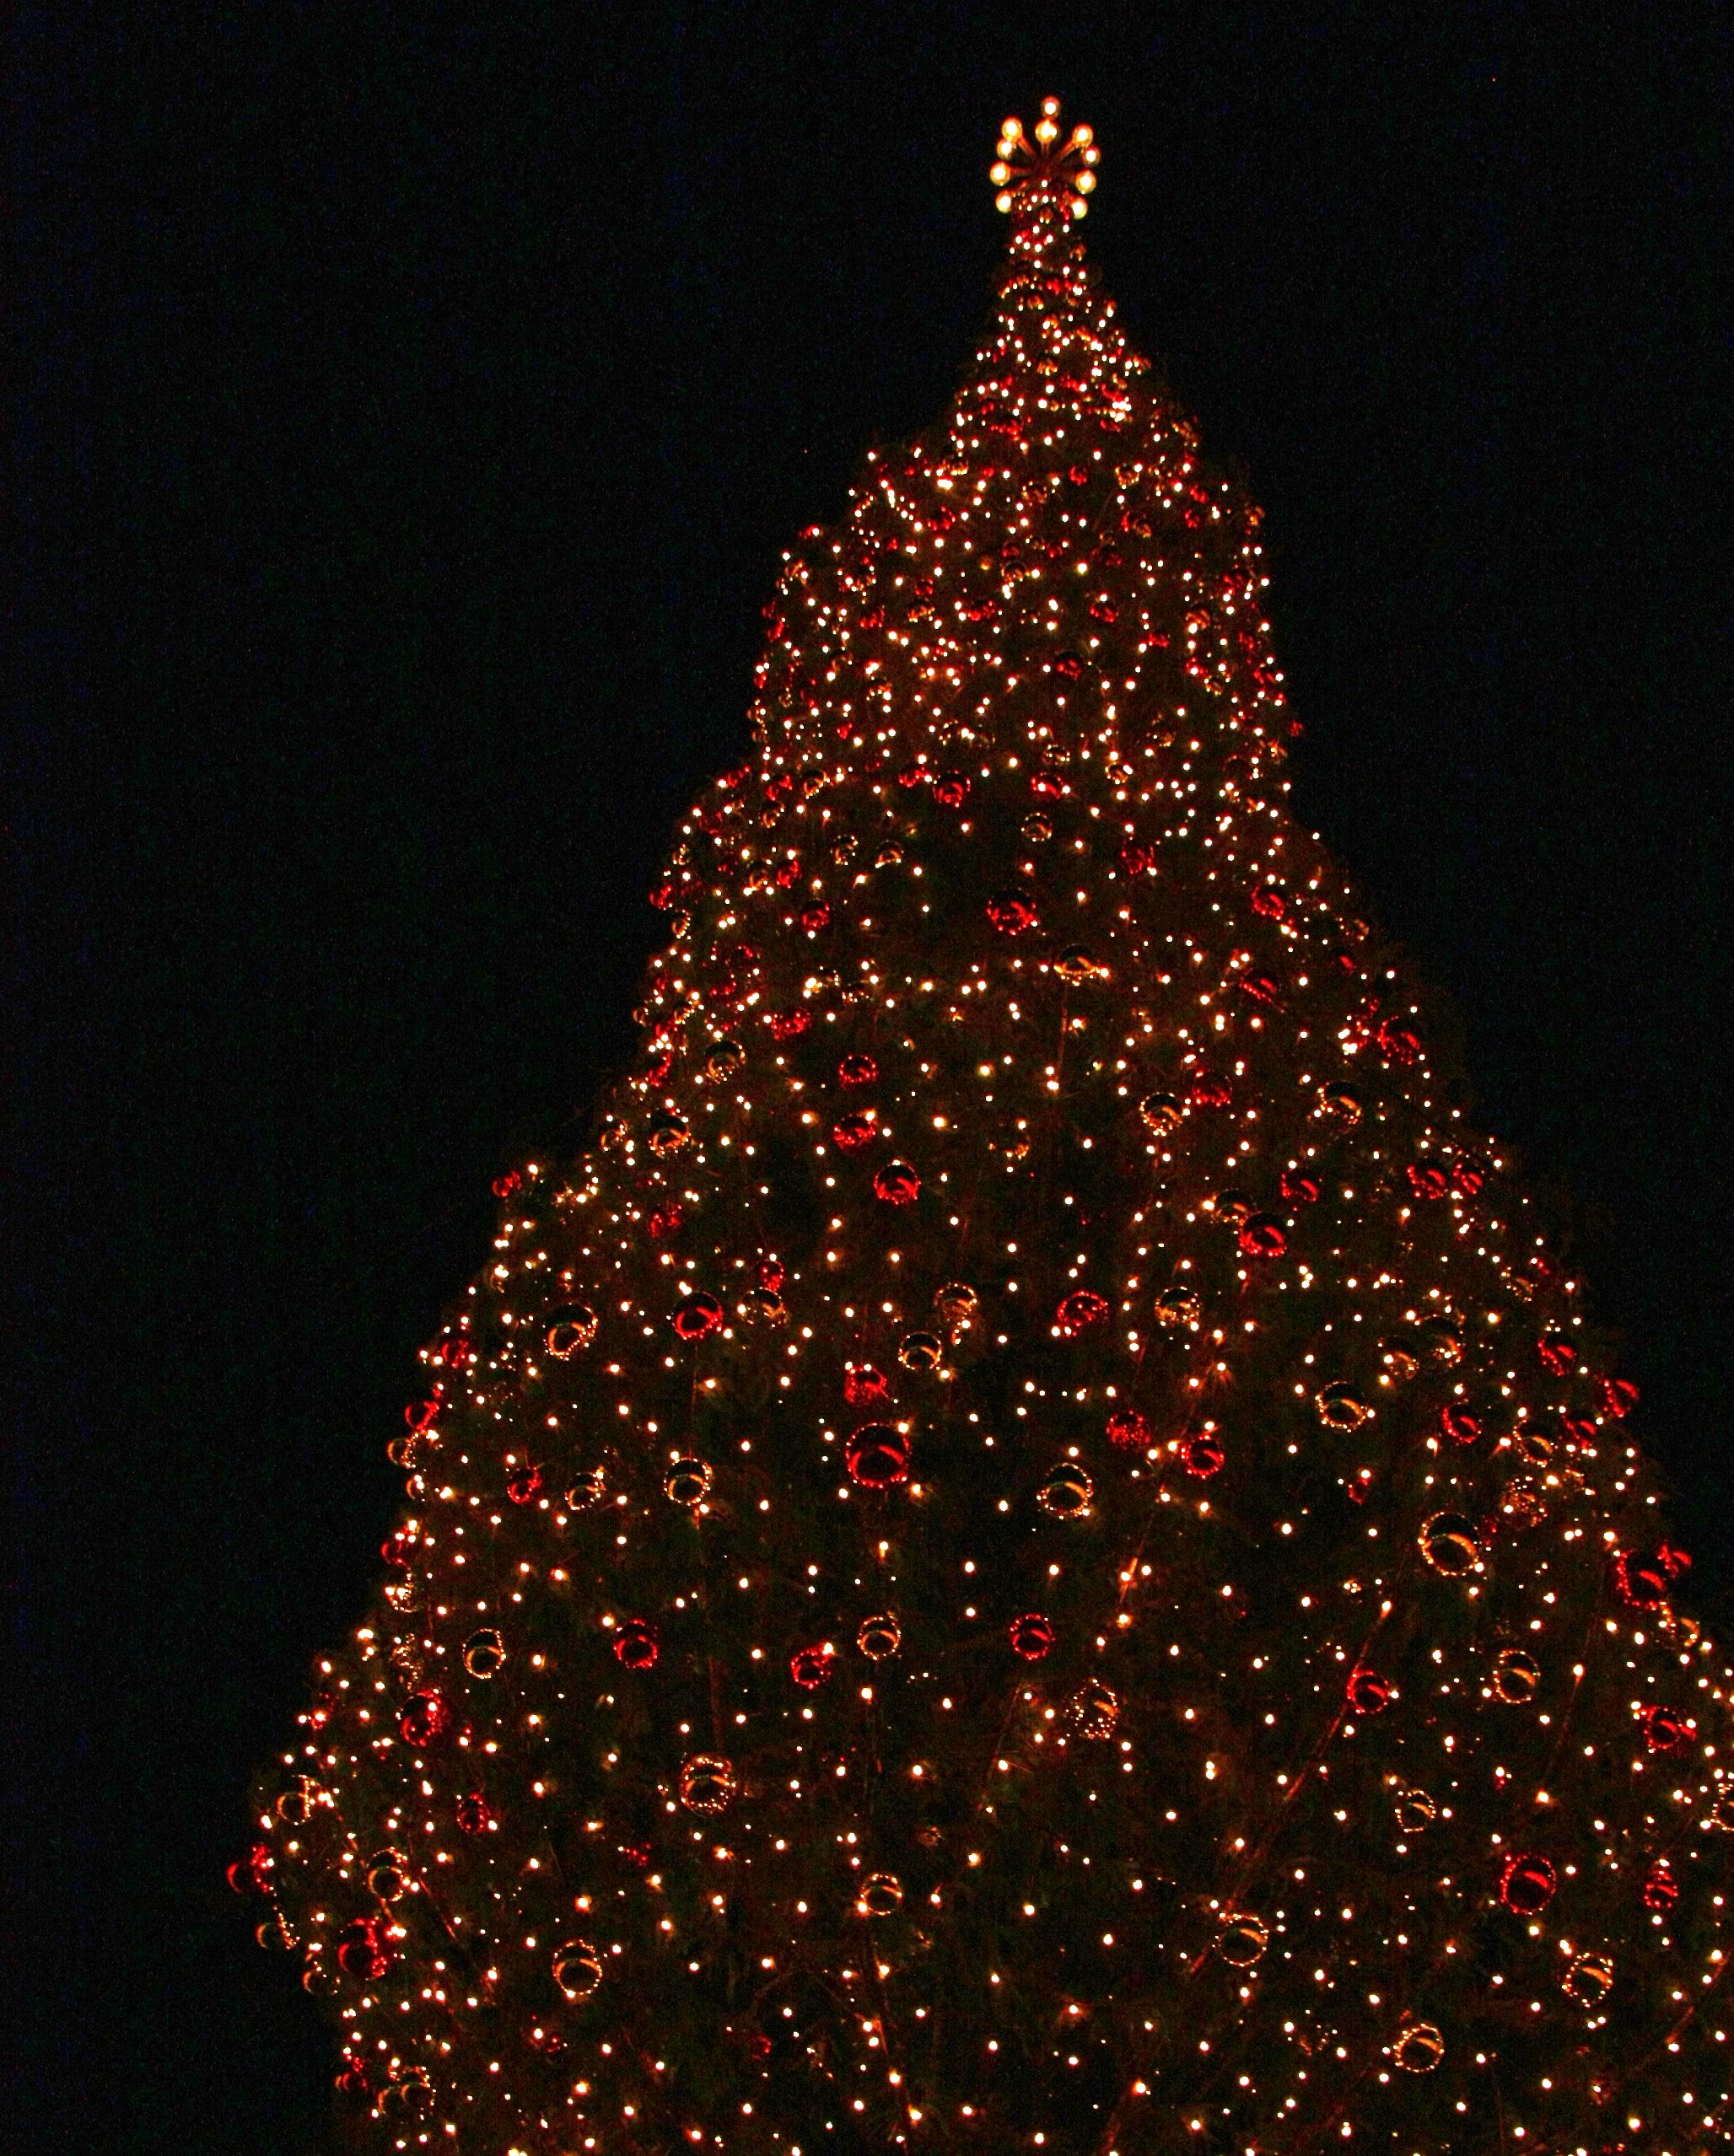 Mayors Christmas Tree At Crown Center In Kansas City, MO